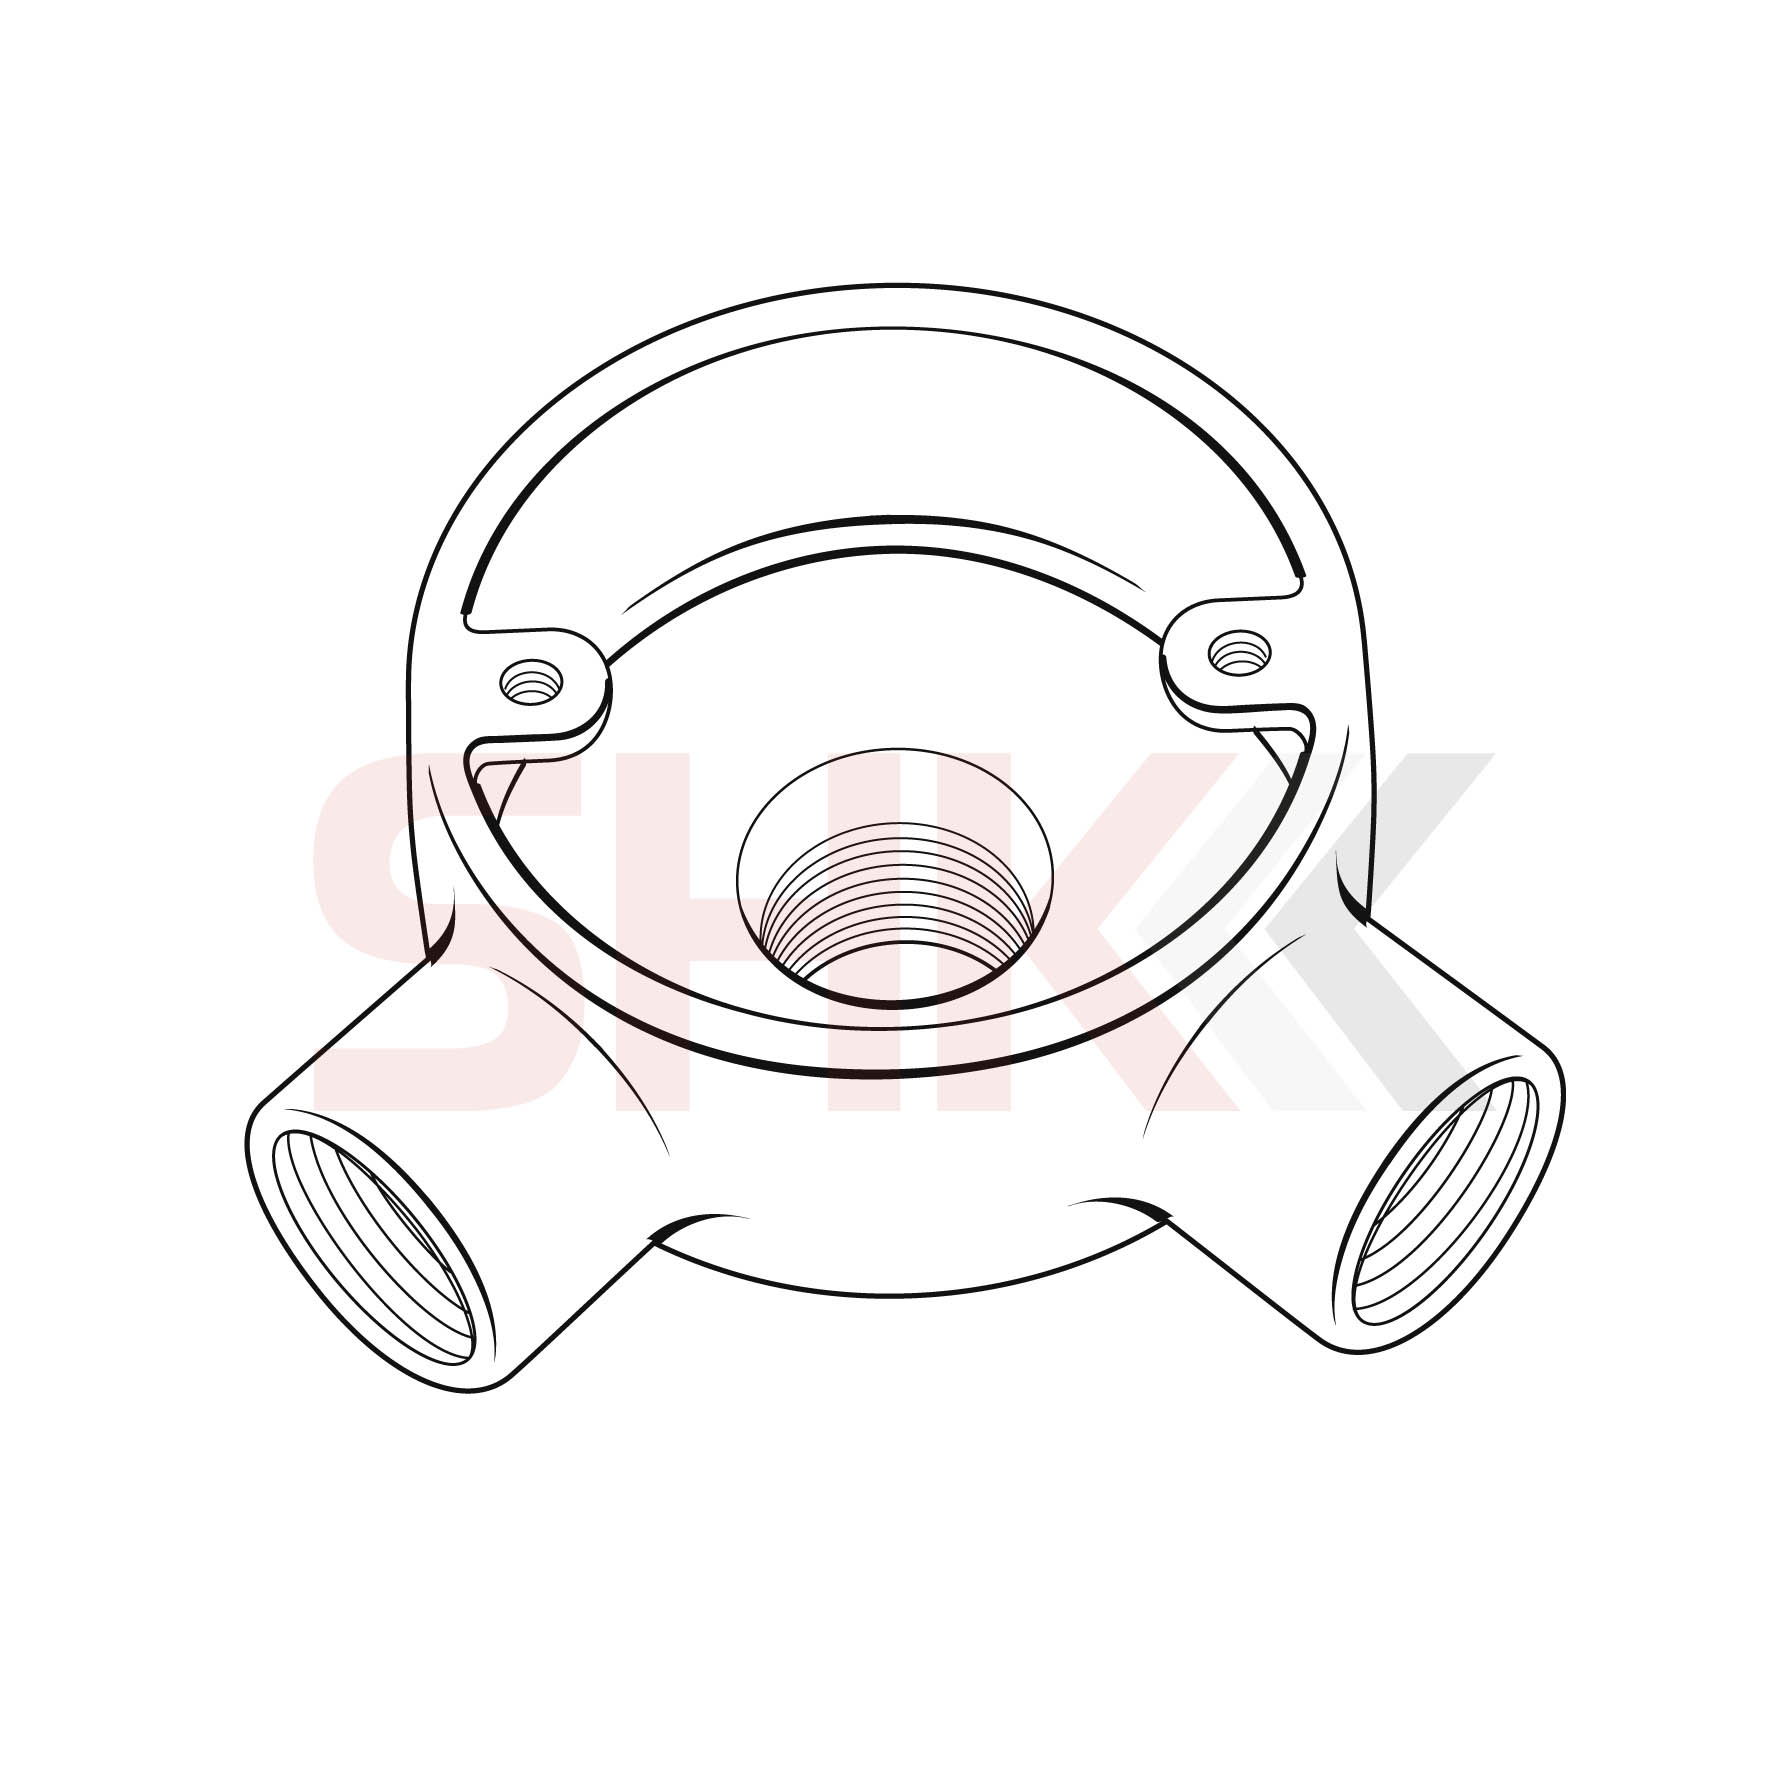 20mm Circular Junction Box Back Outlet 2 Way Angle Shk